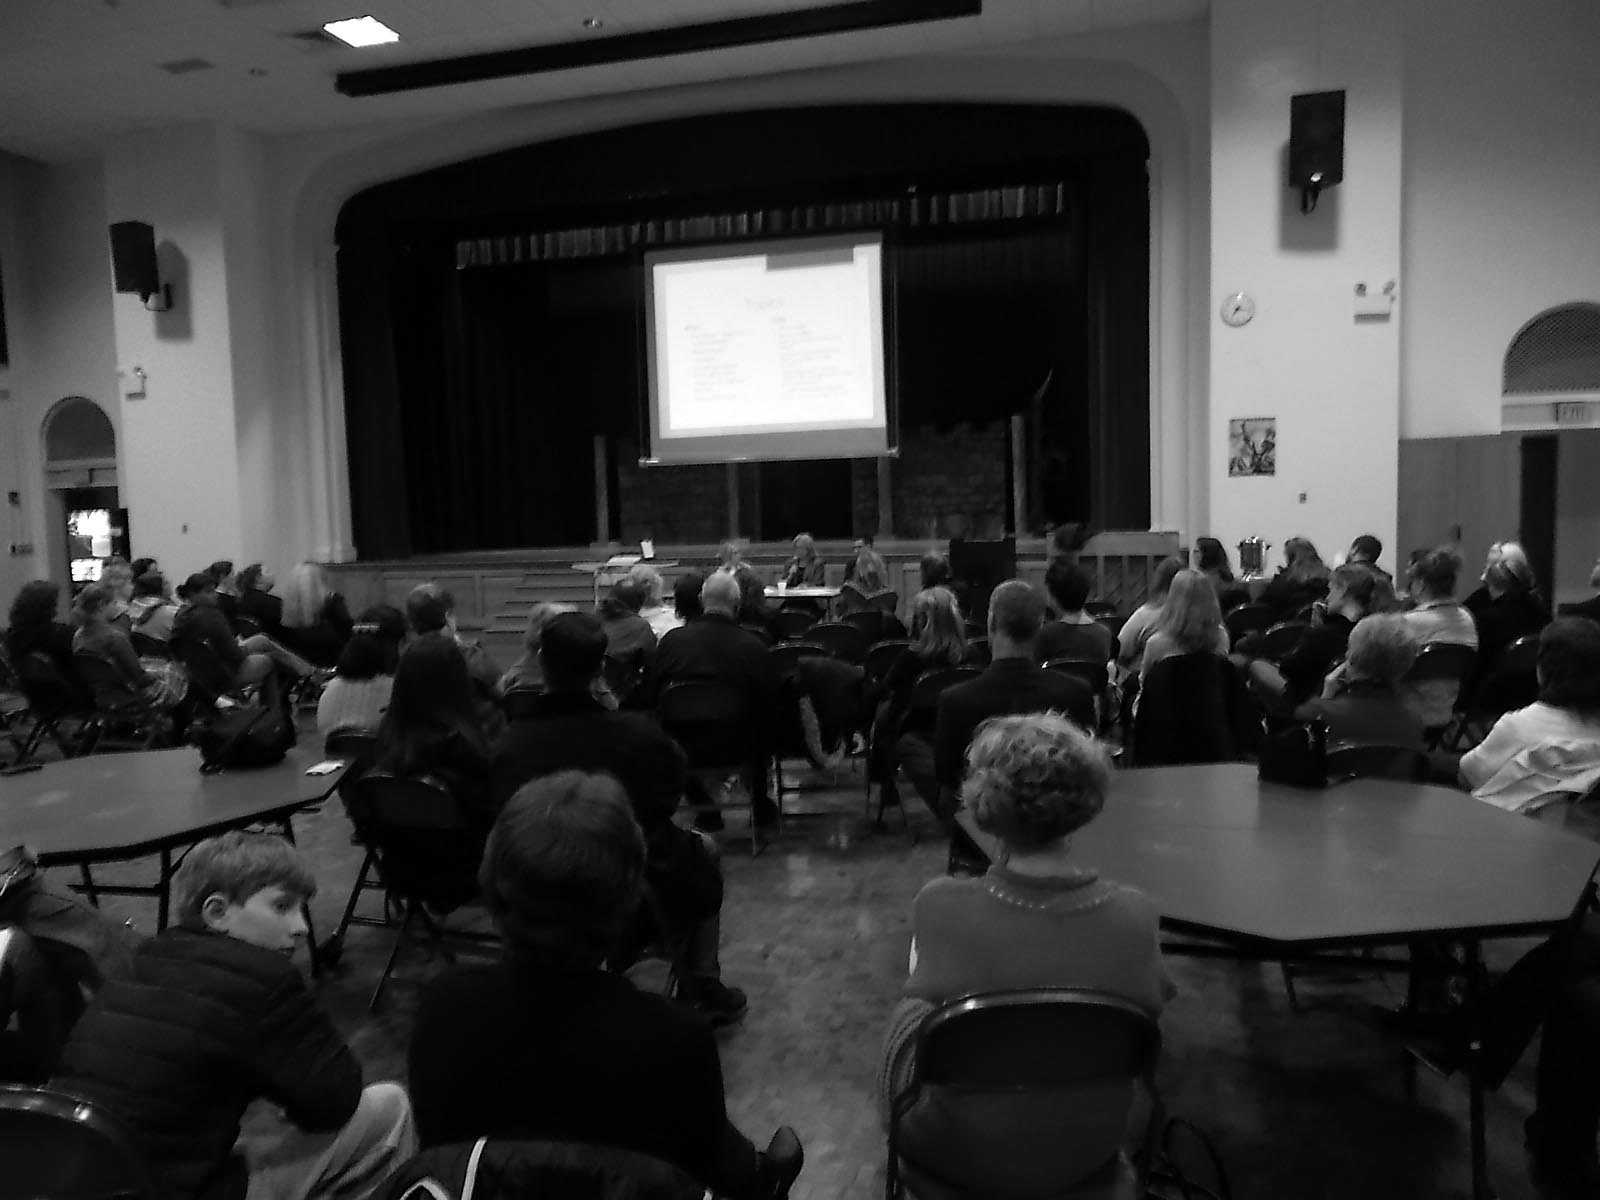 Red Hook parents met with school officials to discuss recent workshops surrounded by controversy.